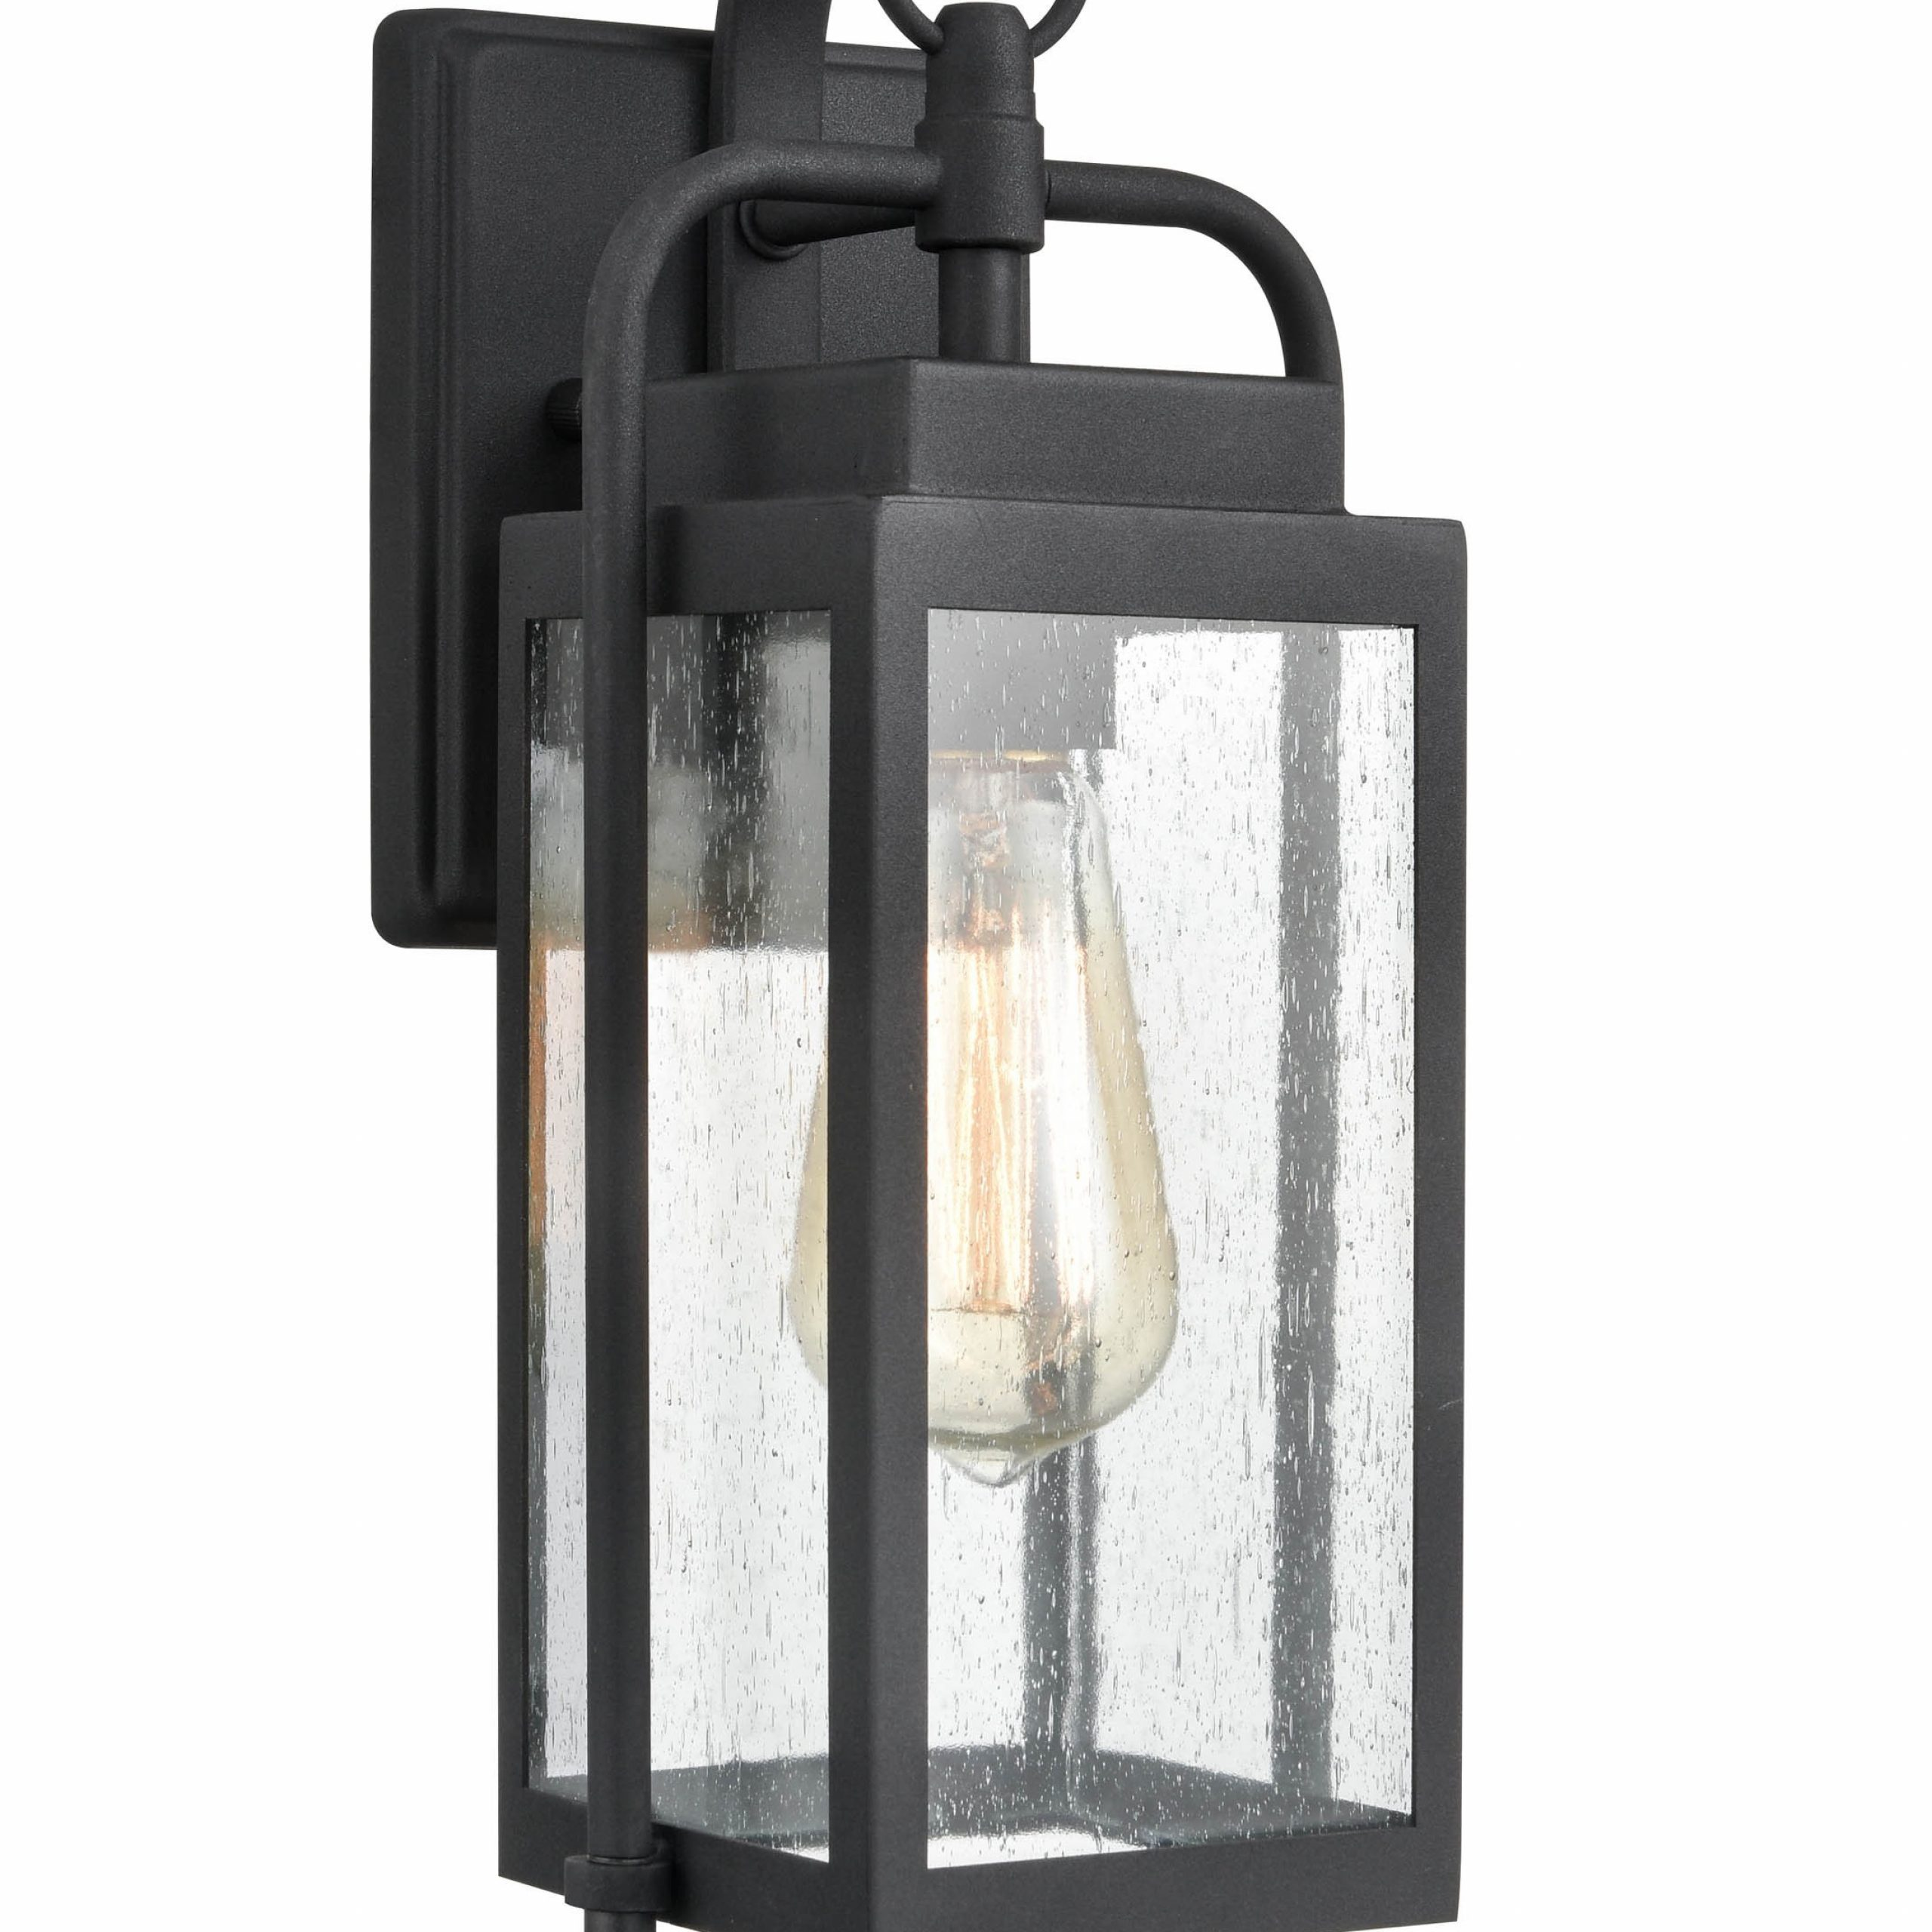 Journey Outdoor Glass Wall Lanterns (View 8 of 9)